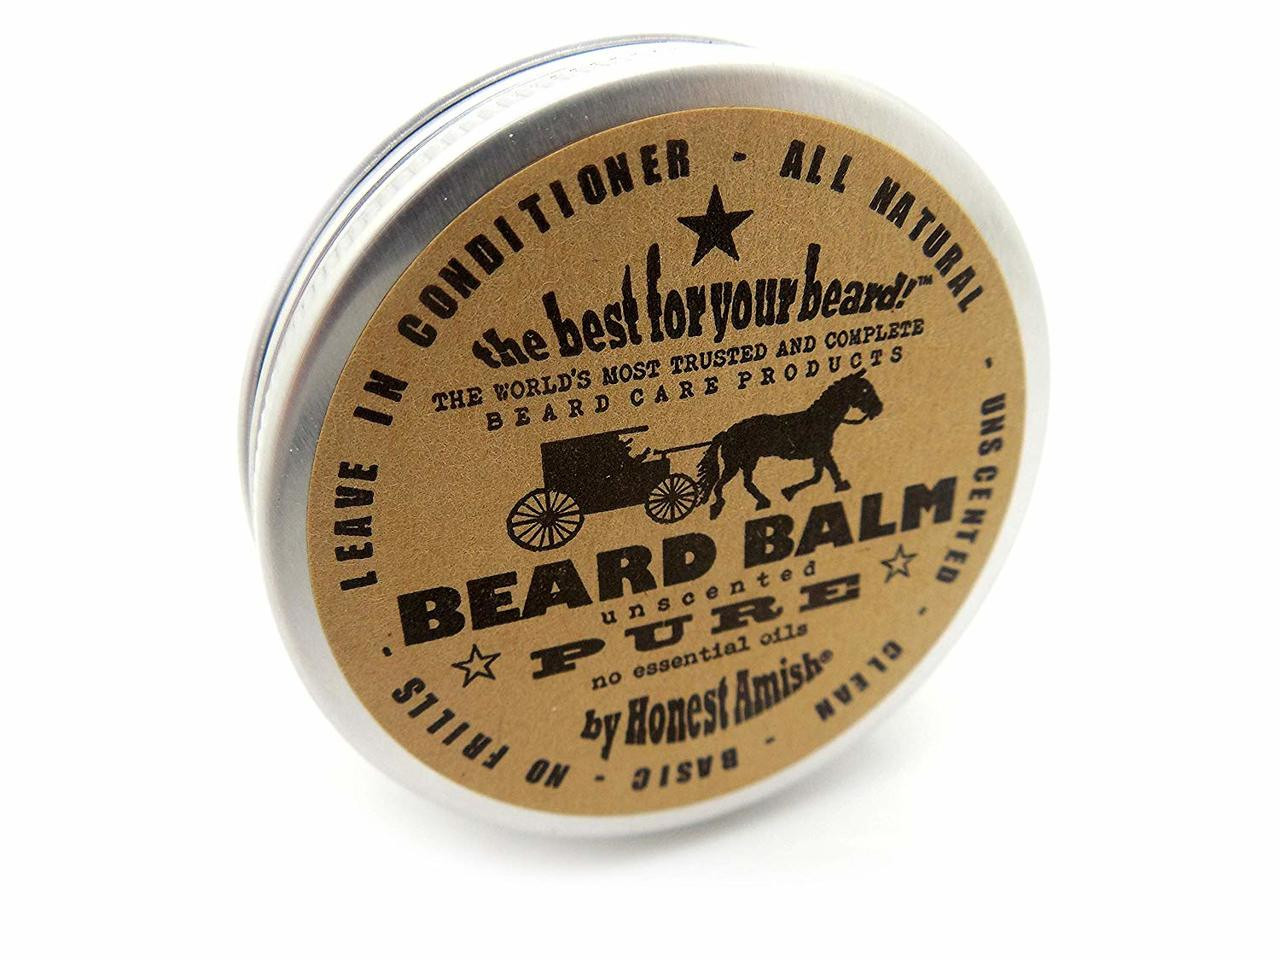 Buy UK Pure Beard Balm No Fragrance, All Natural 2 0 oz